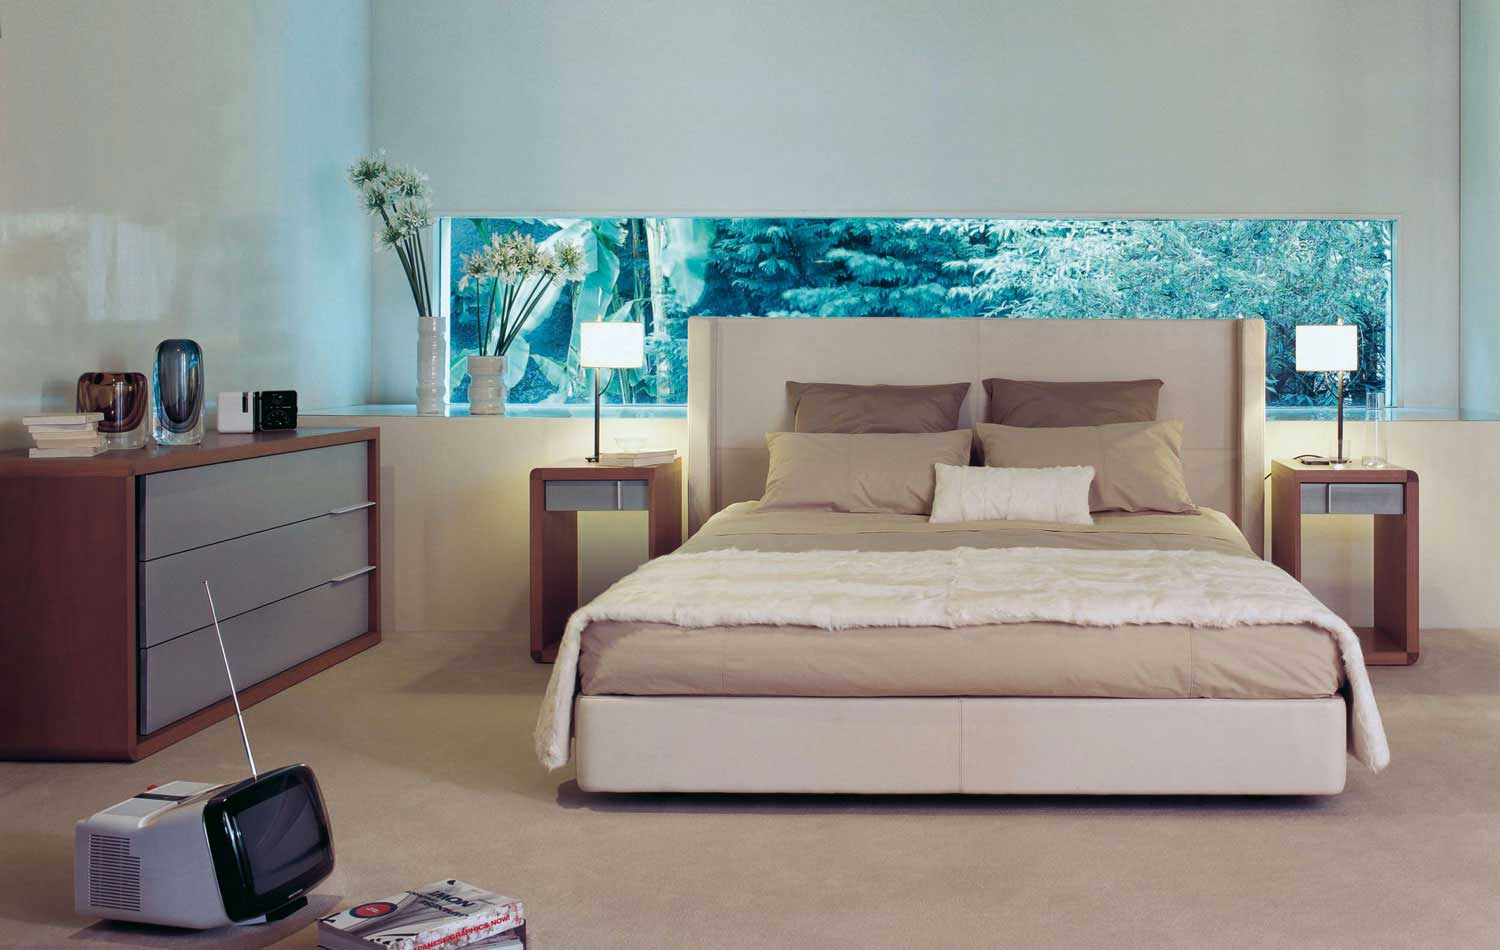 Bedrooms from Roche Bobois